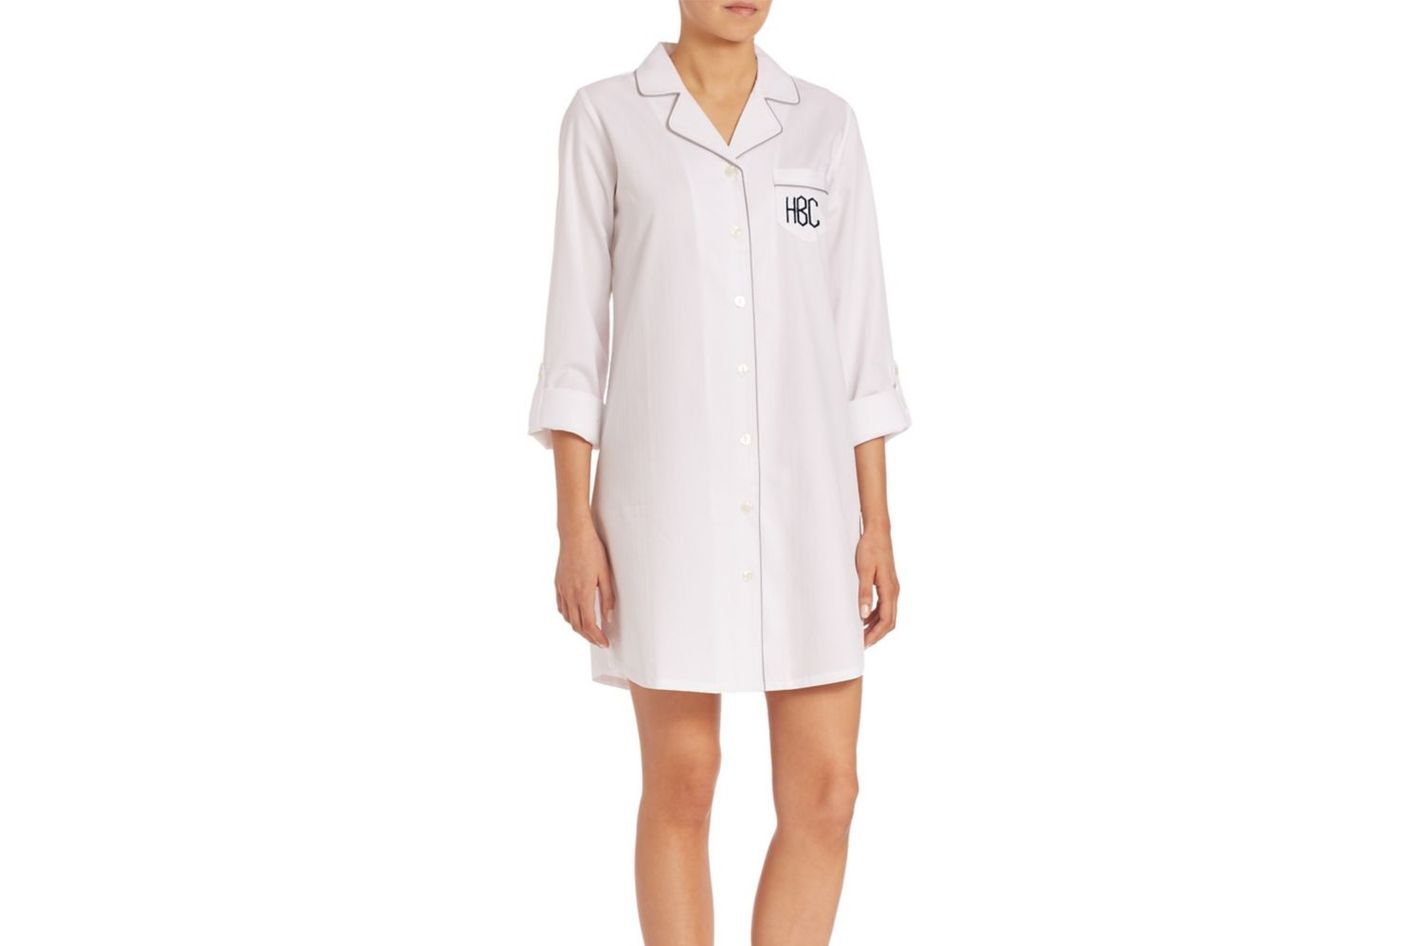 Saks Fifth Avenue Collection Personalized Herringbone Jacquard Sleepshirt